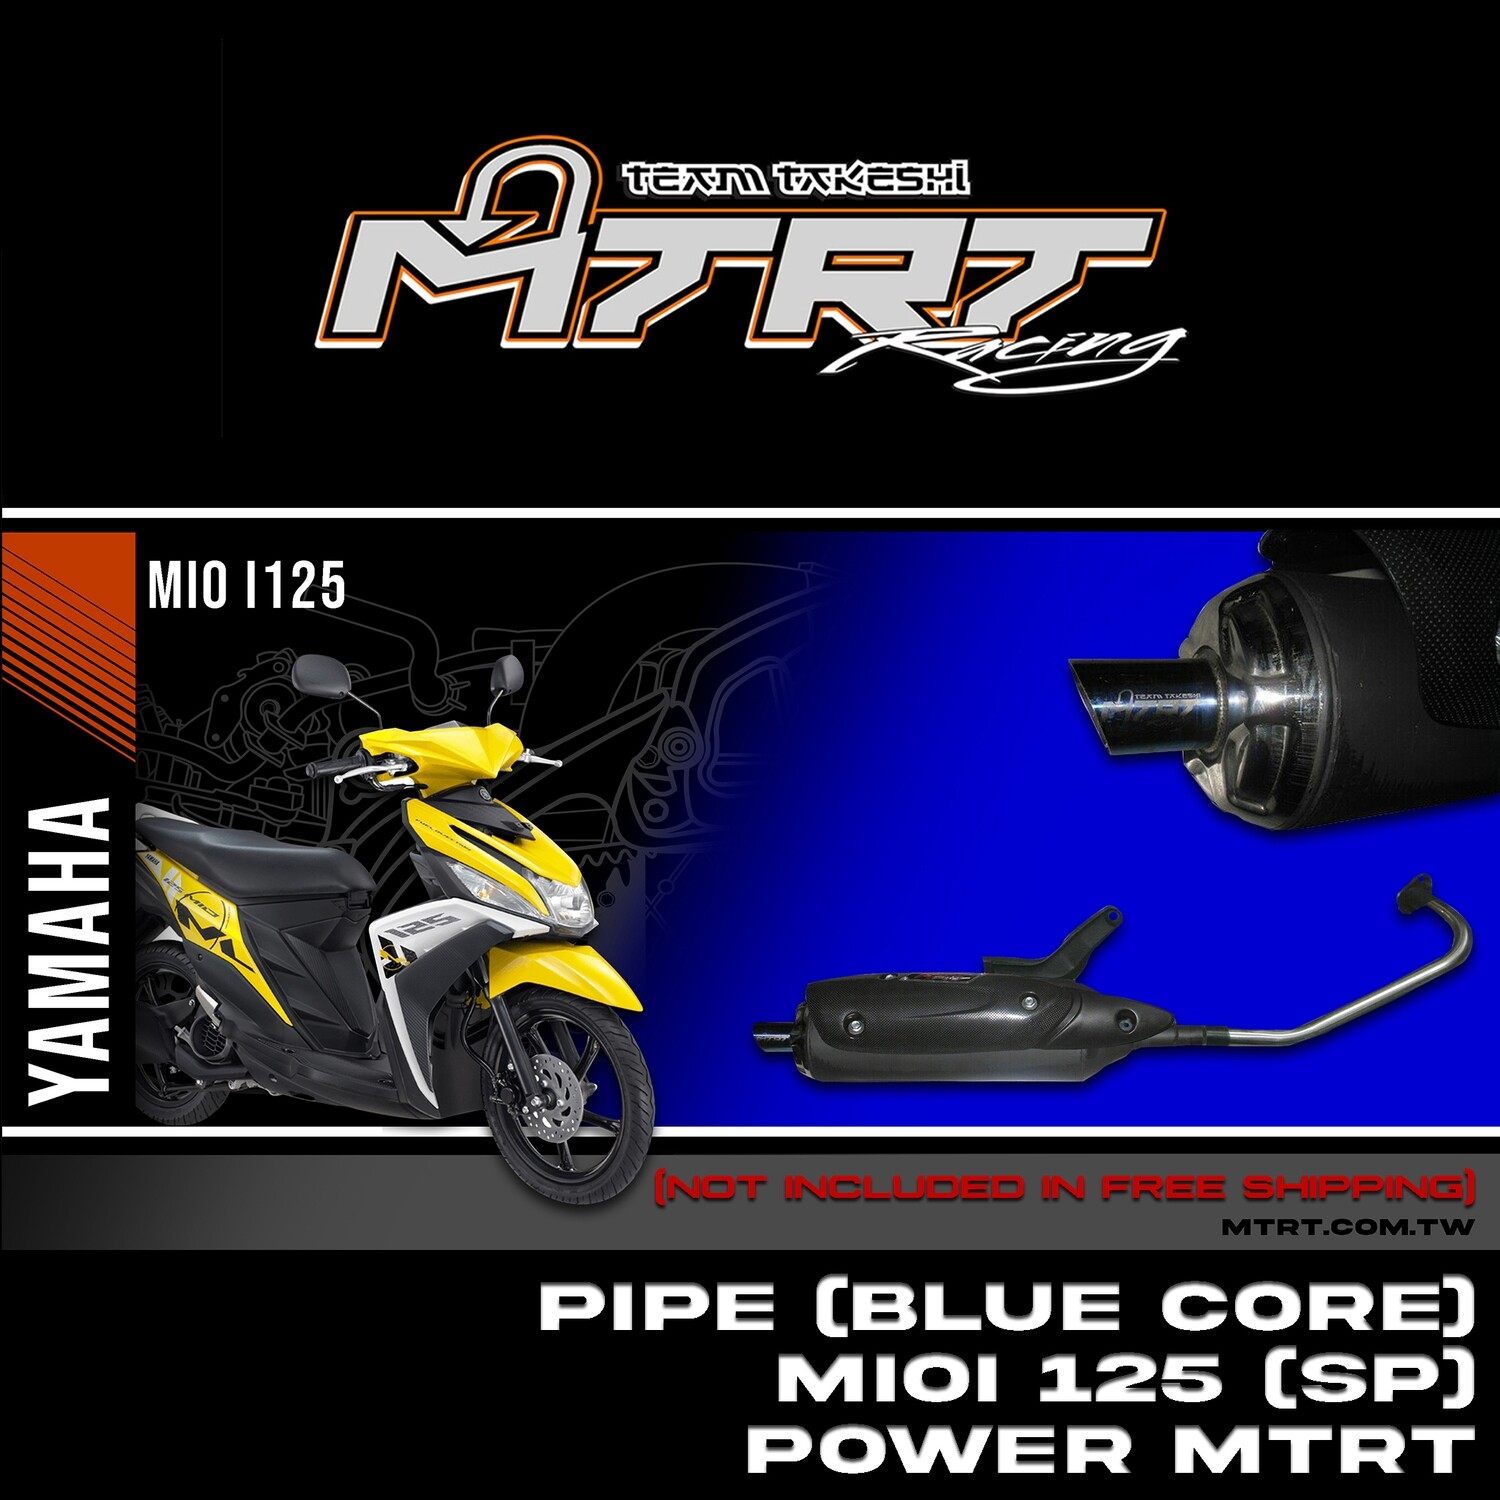 PIPE (blue core) MIOi125 (SP) POWER MTRT